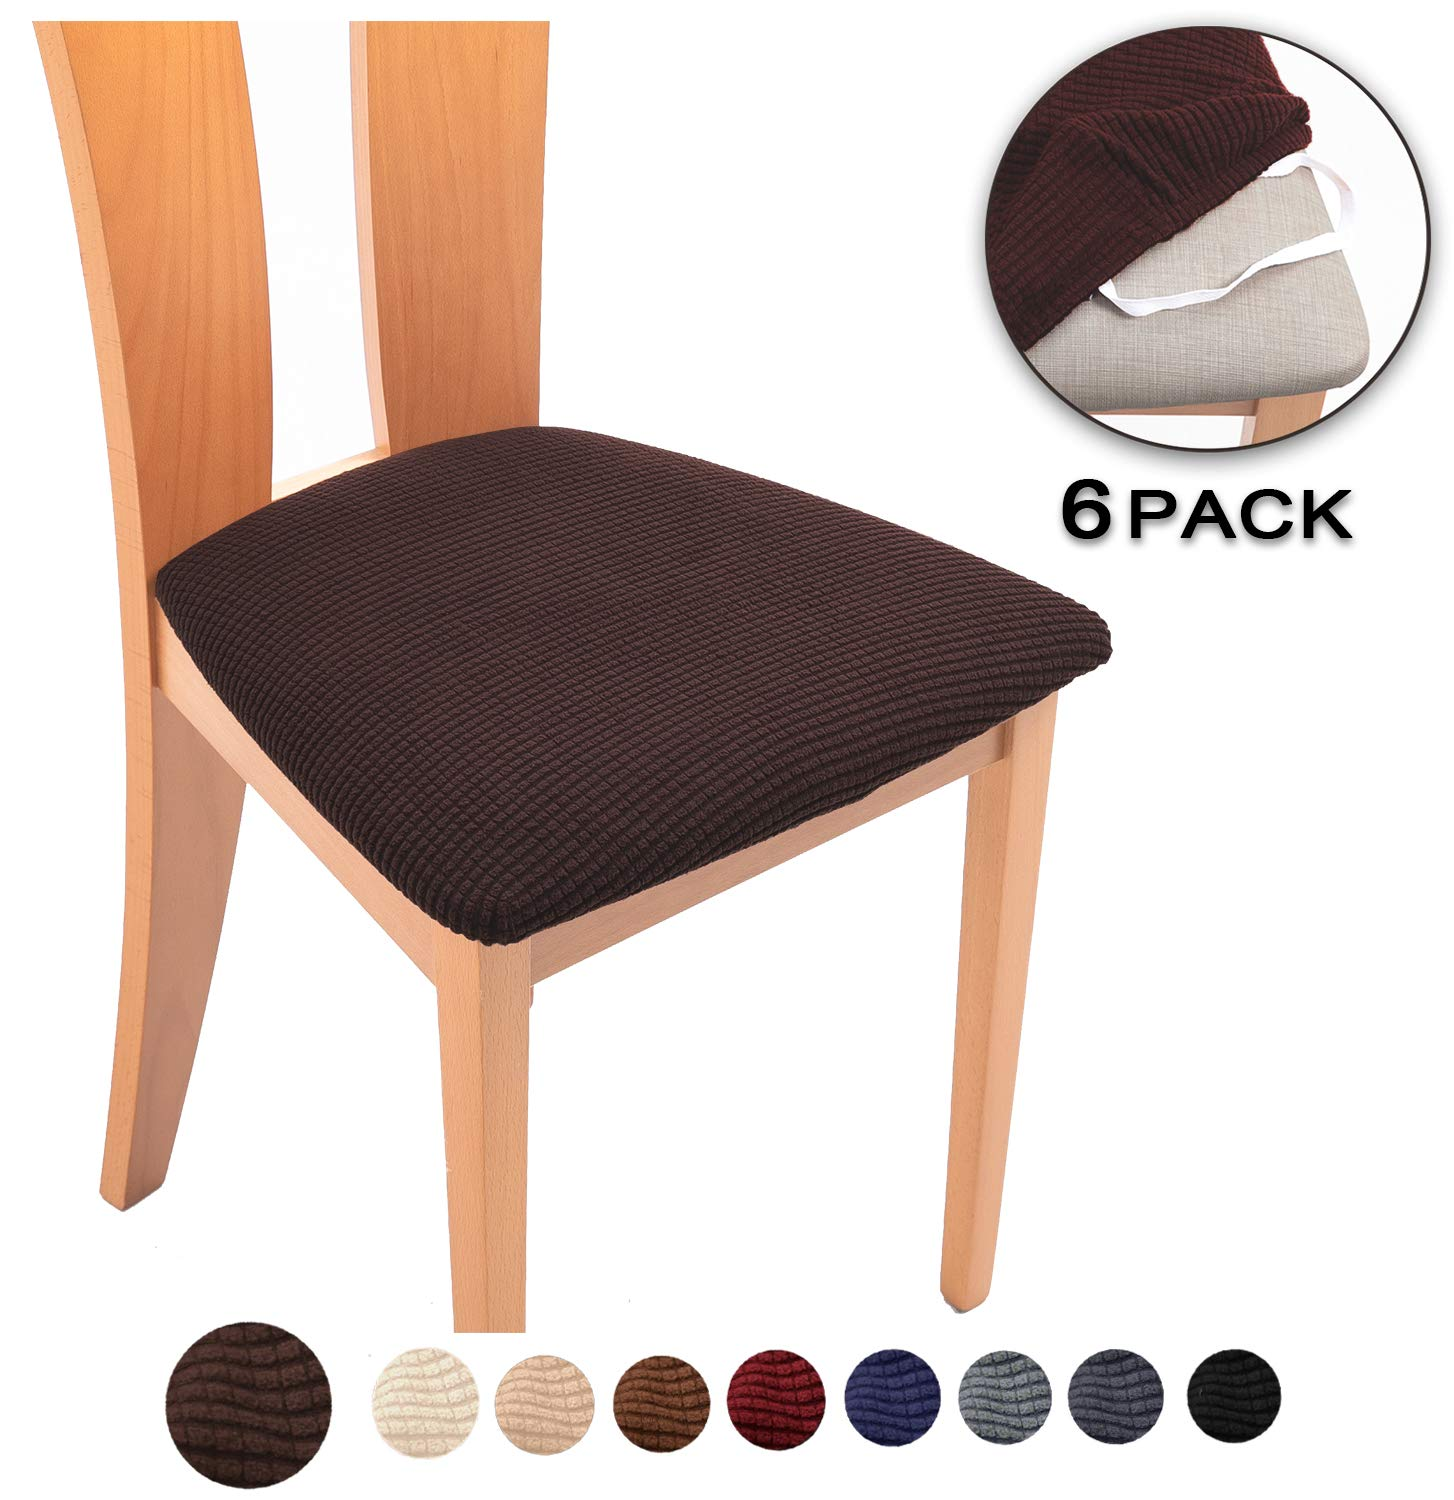 10 Best Dining Chair Seat Covers (2019 Shopping Guide ...